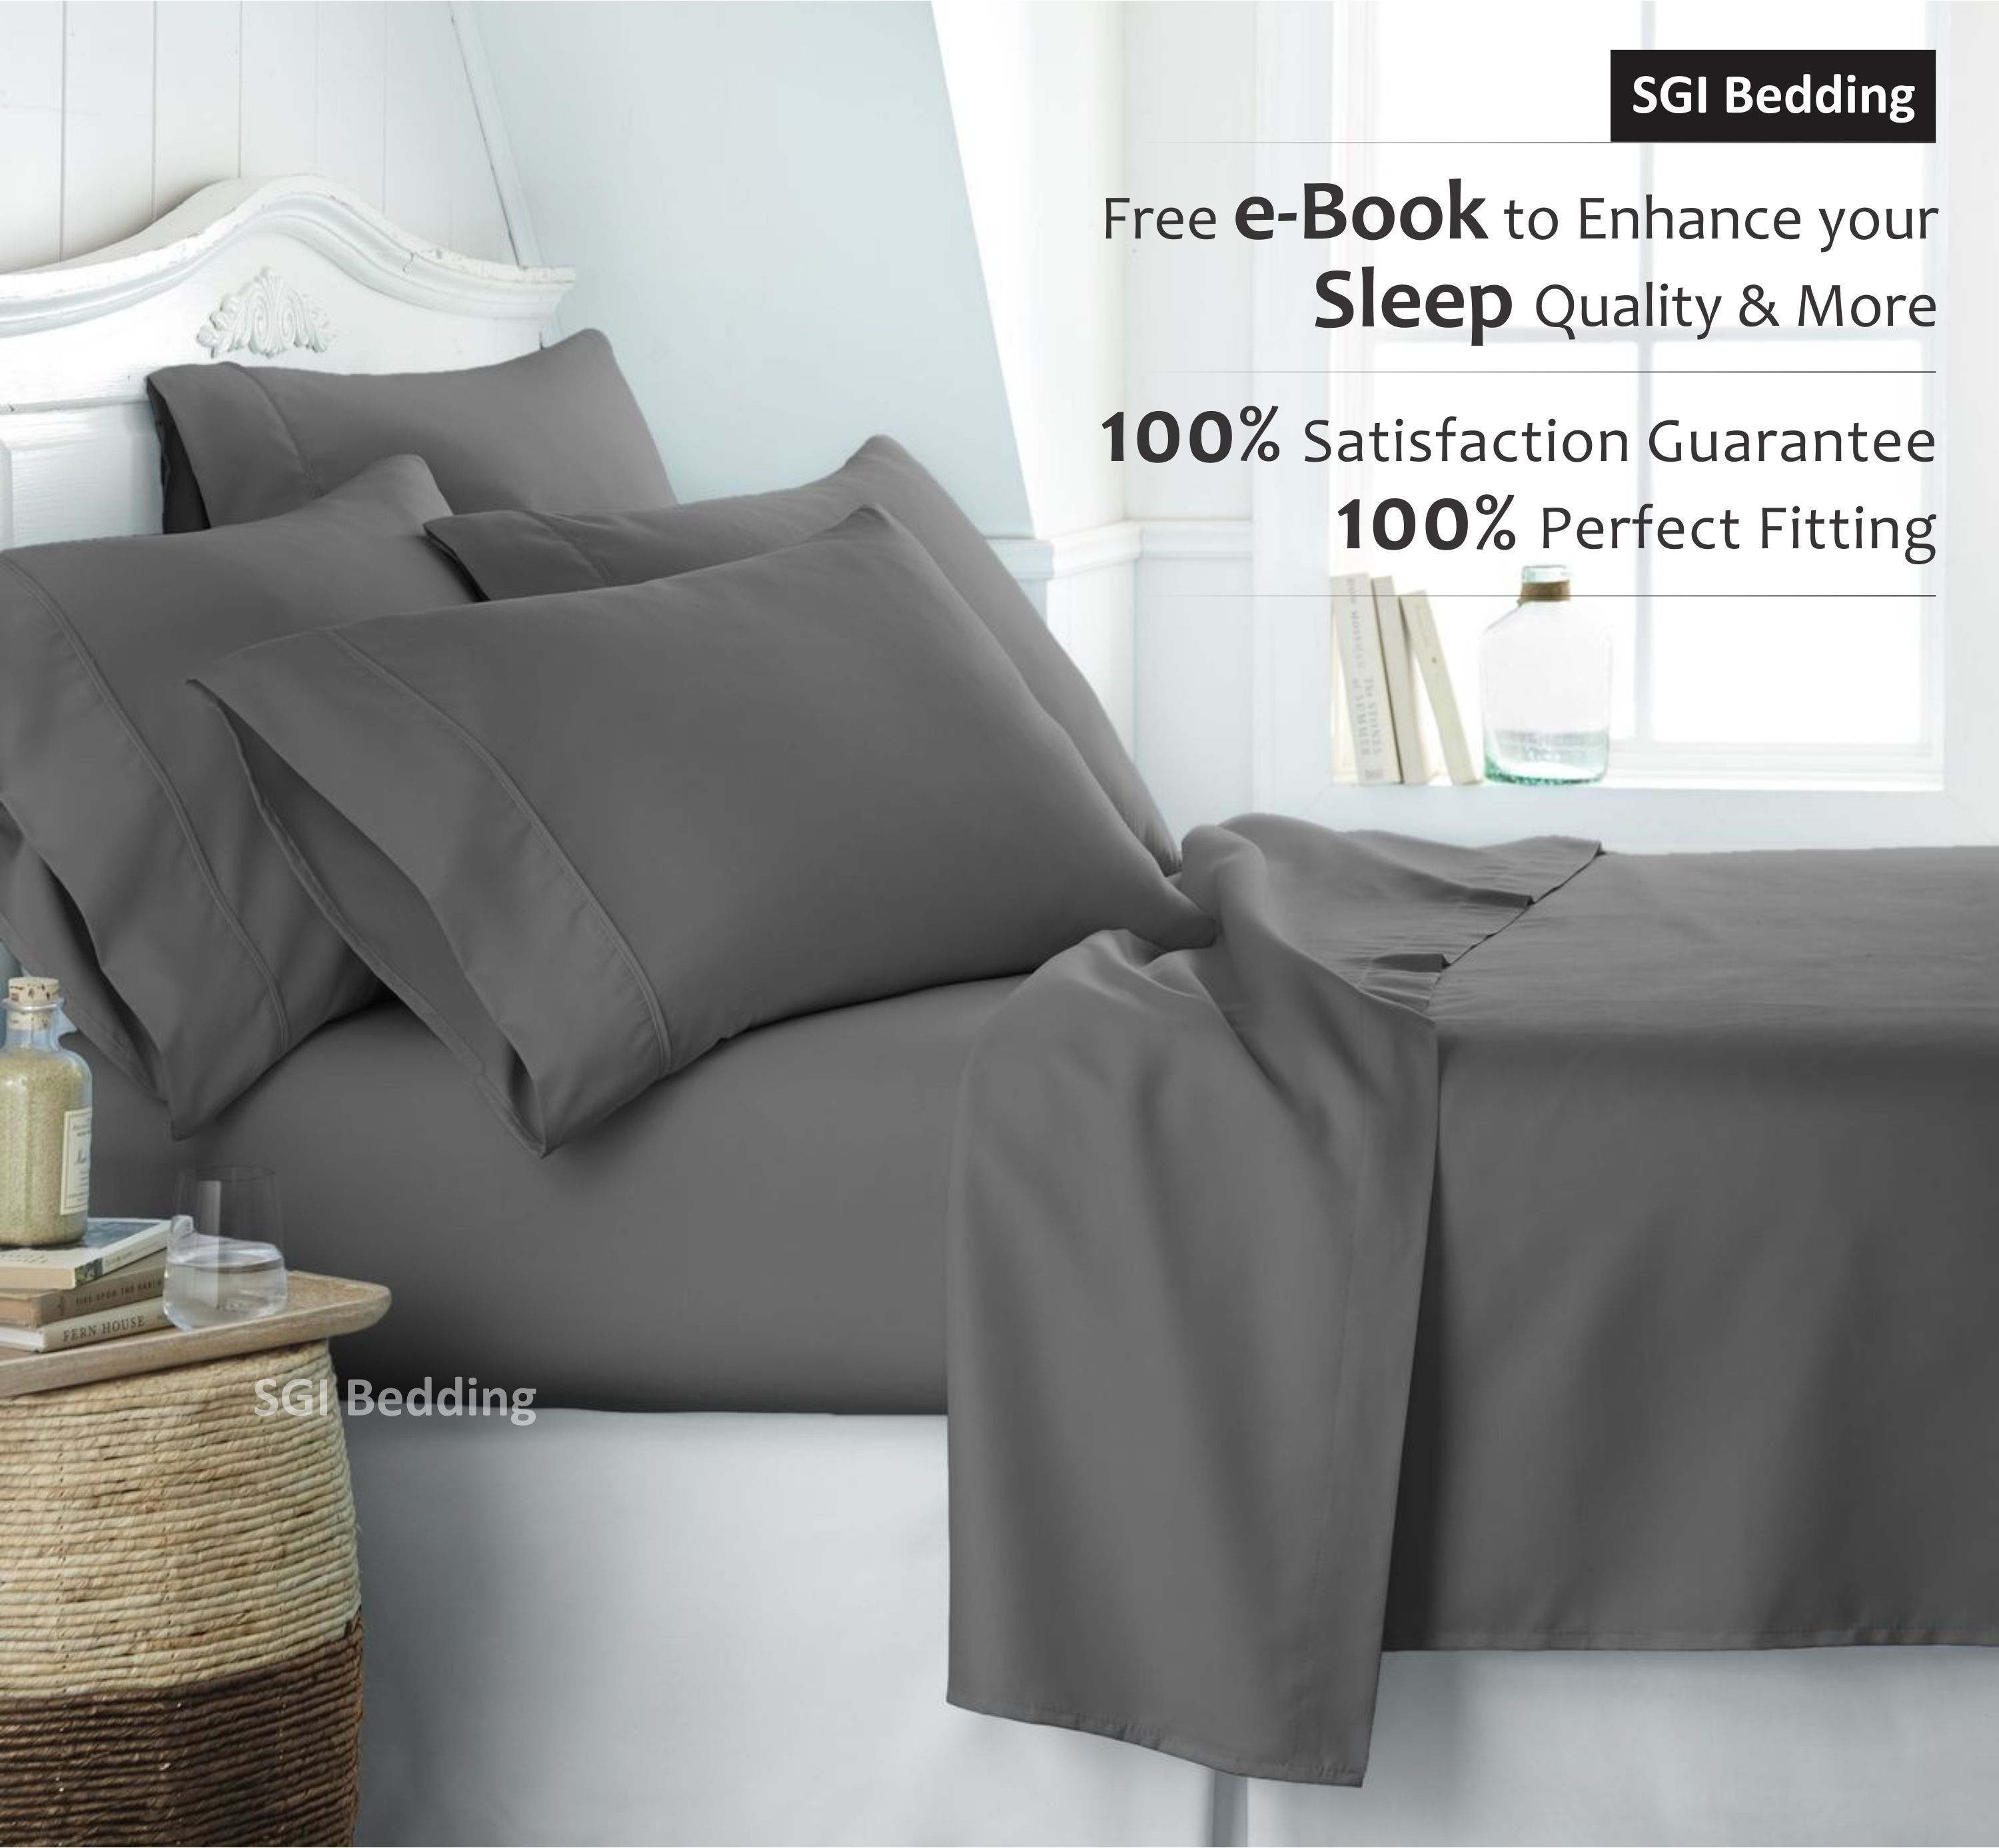 Get perfect sleep with the best queen bed set